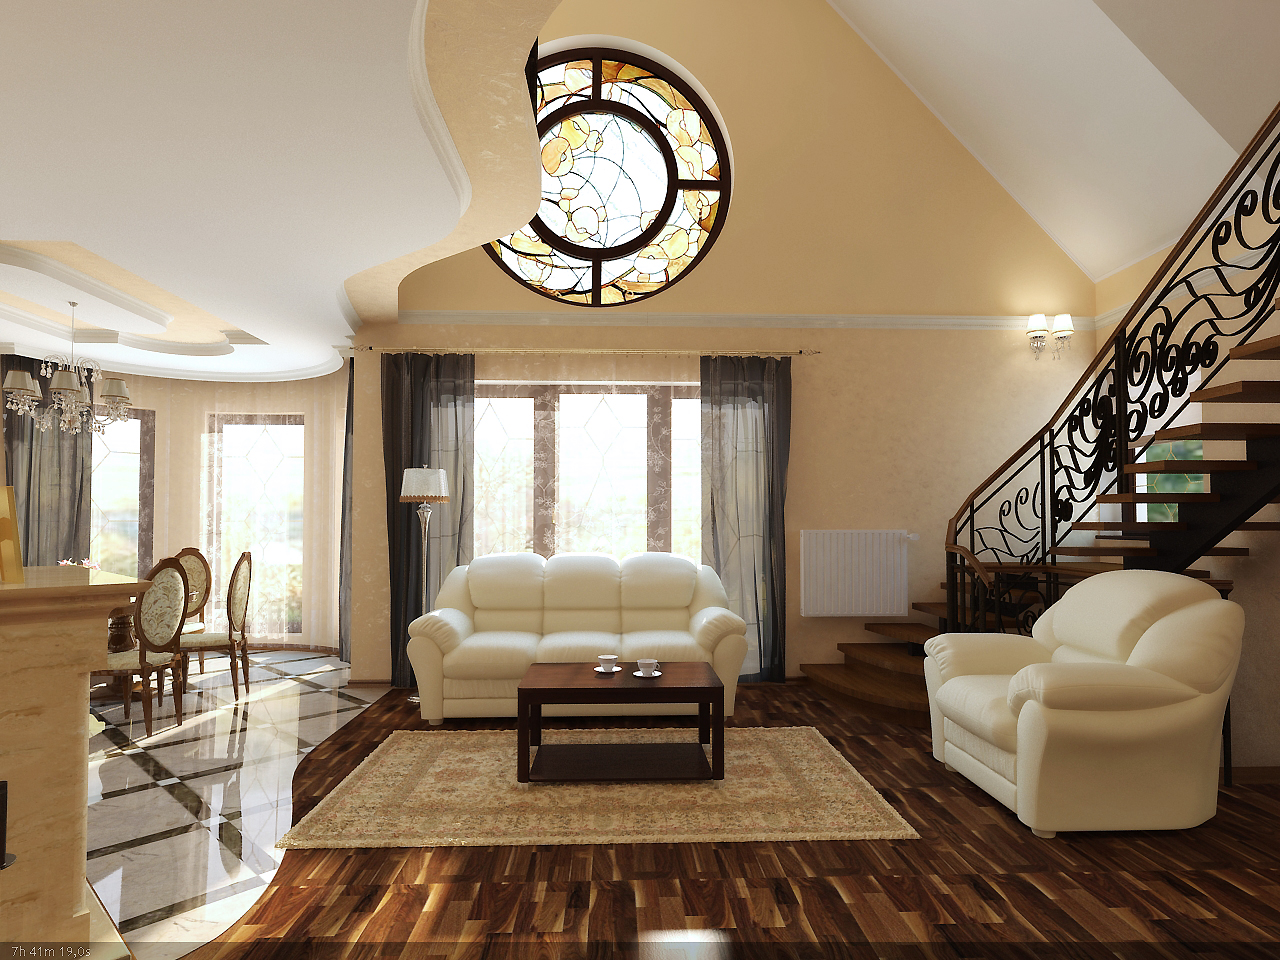 Living Room Houses Interior Design Pictures classic interior design home interior